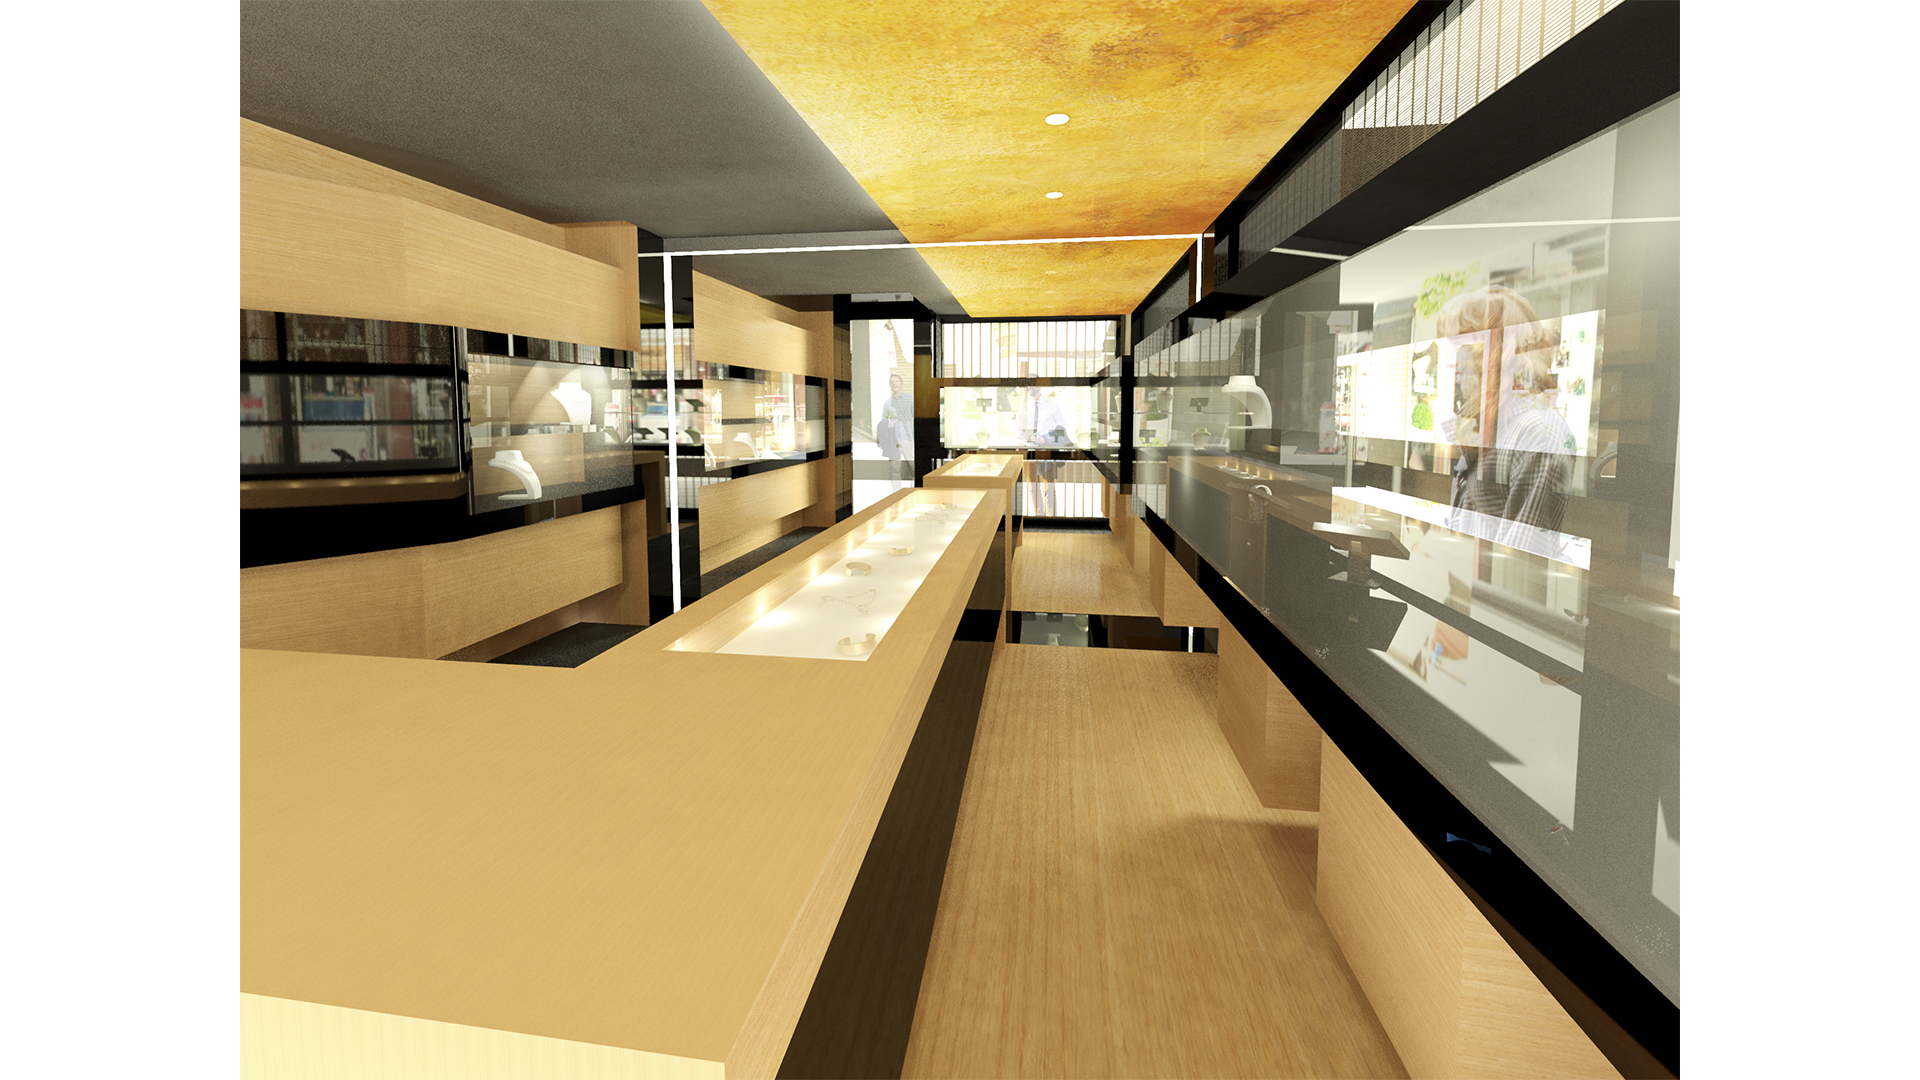 RENOVATION OF JEWELLERY STORE